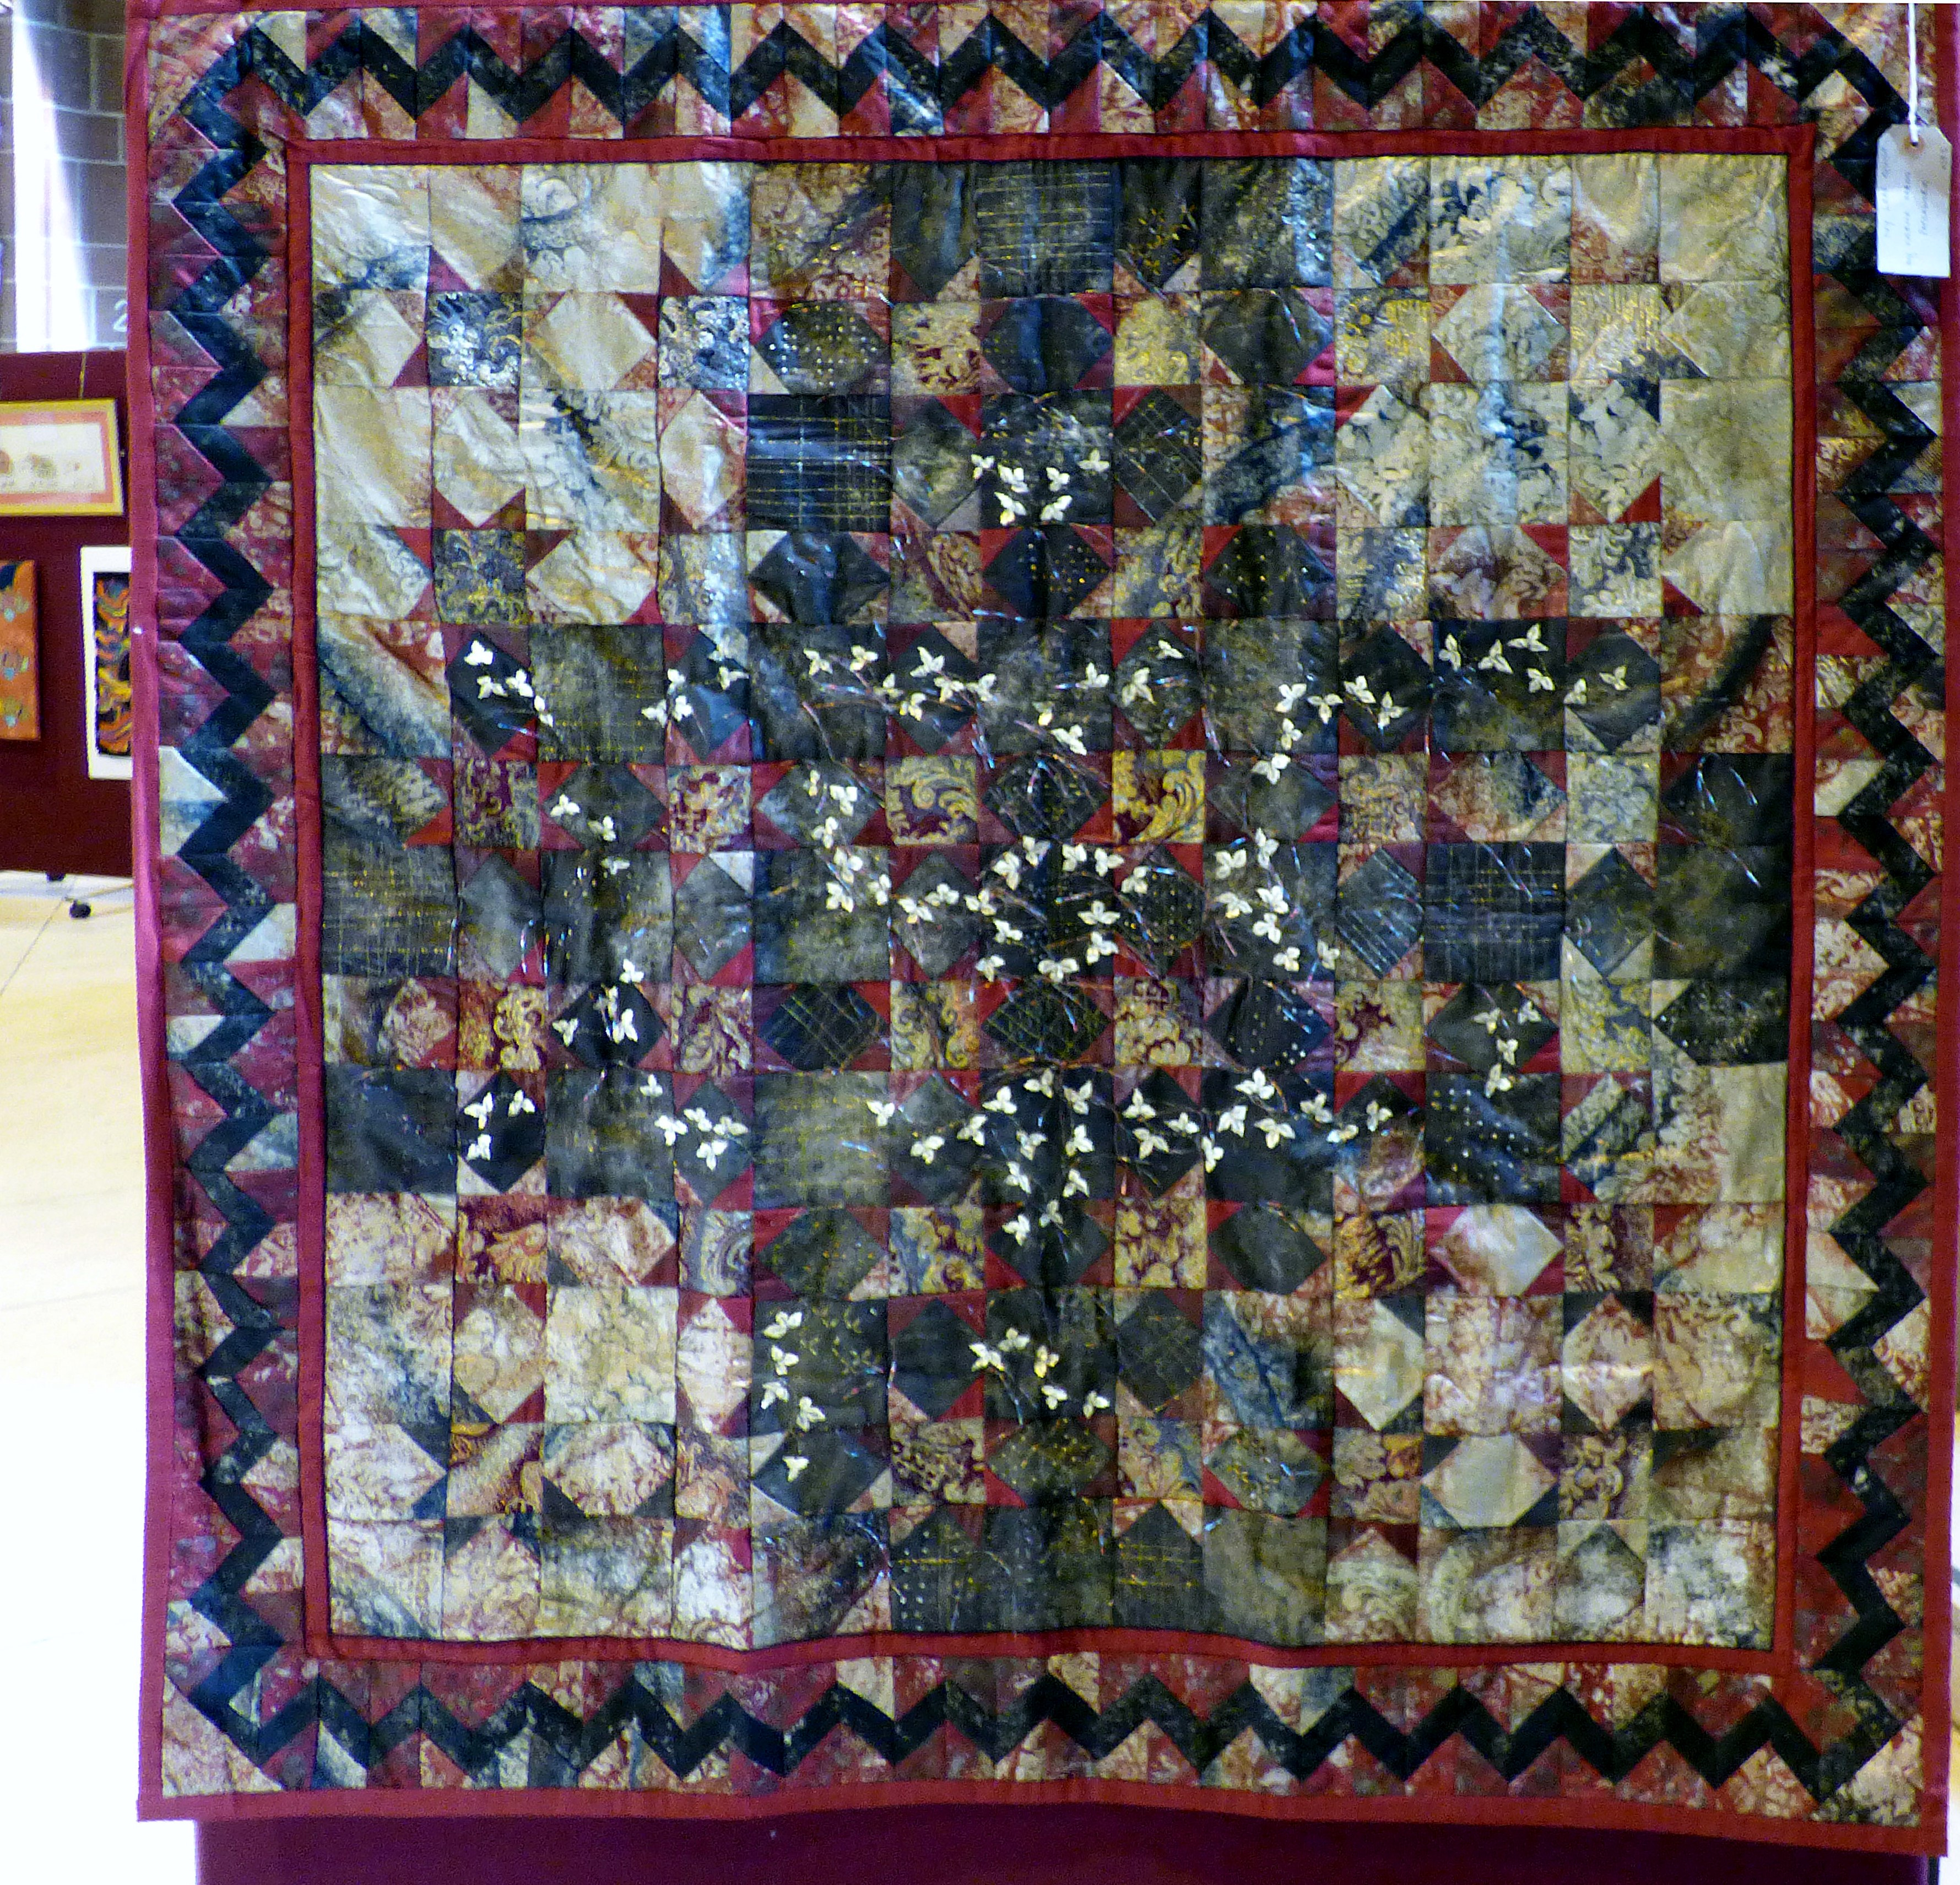 IVY LEAF QUILT by Norma Heron at 60 Glorious Years exhibition 2016